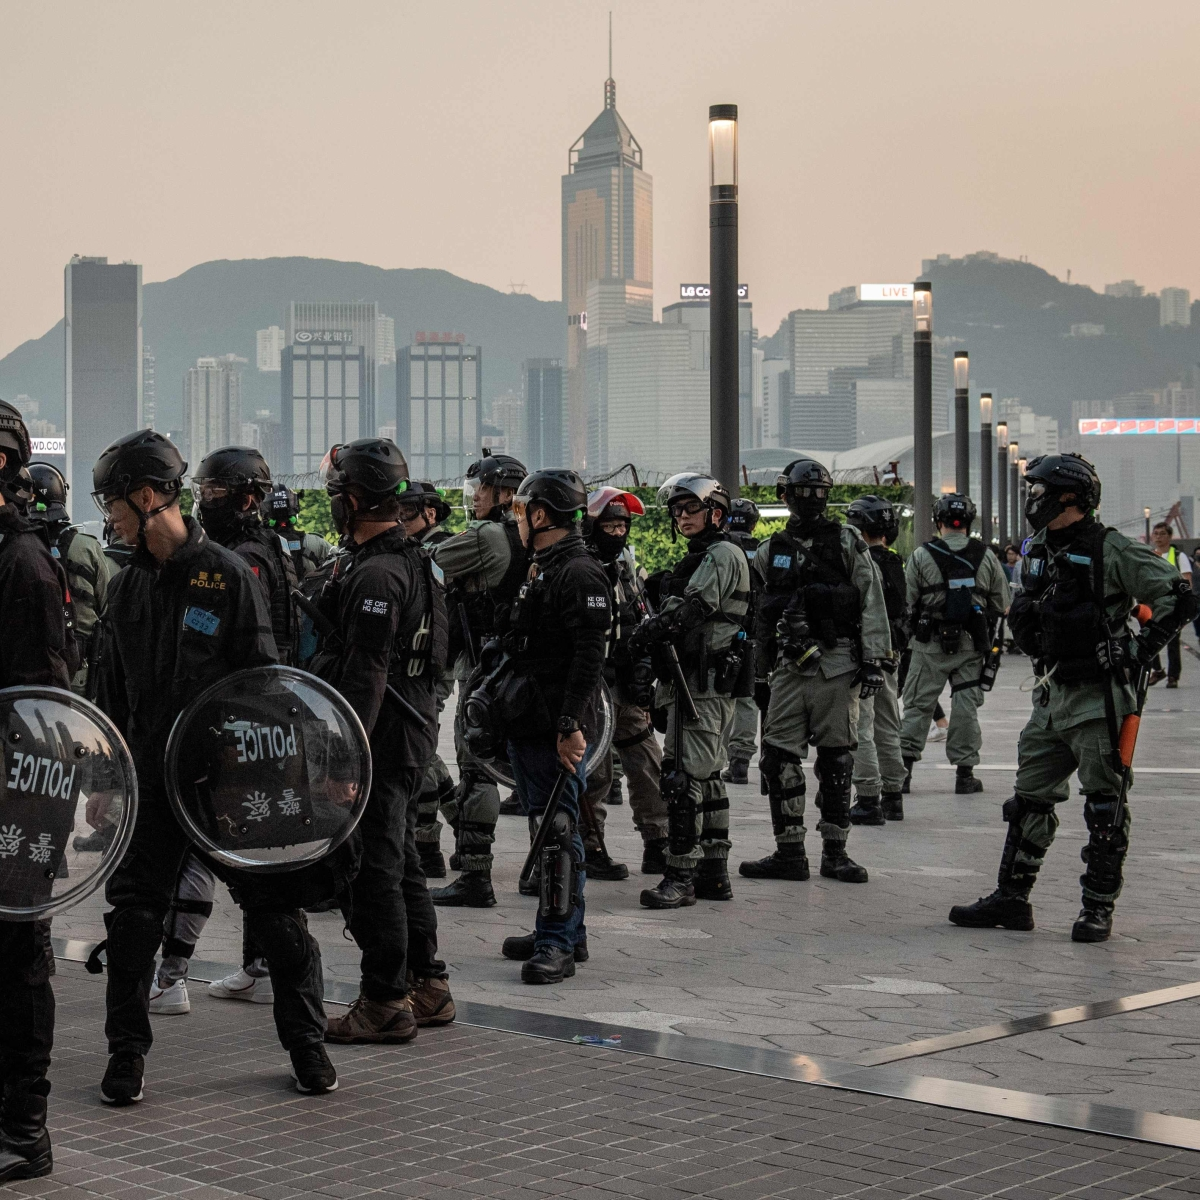 Hong Kong protesters back to the streets